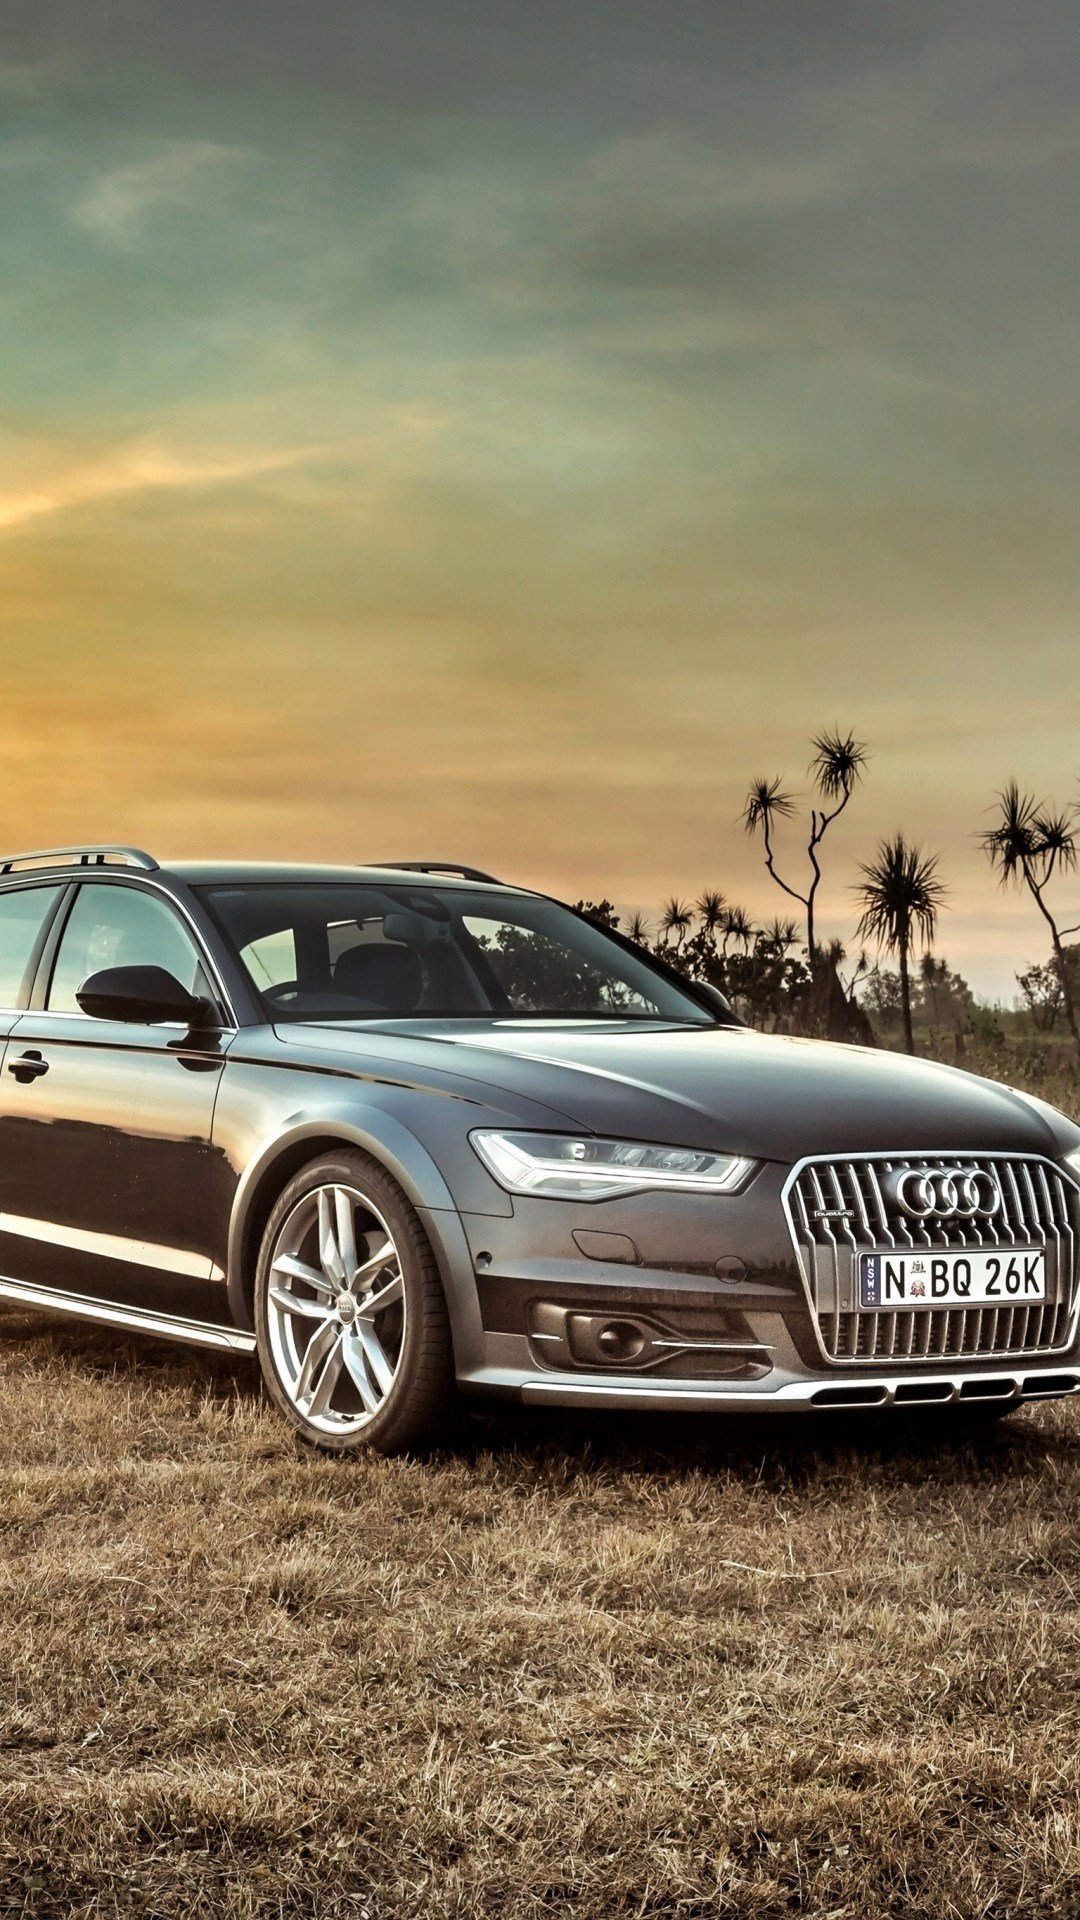 Latest Tag For Audi Car Hd Backgrounds Wallpapers Of Audi Car Free Download